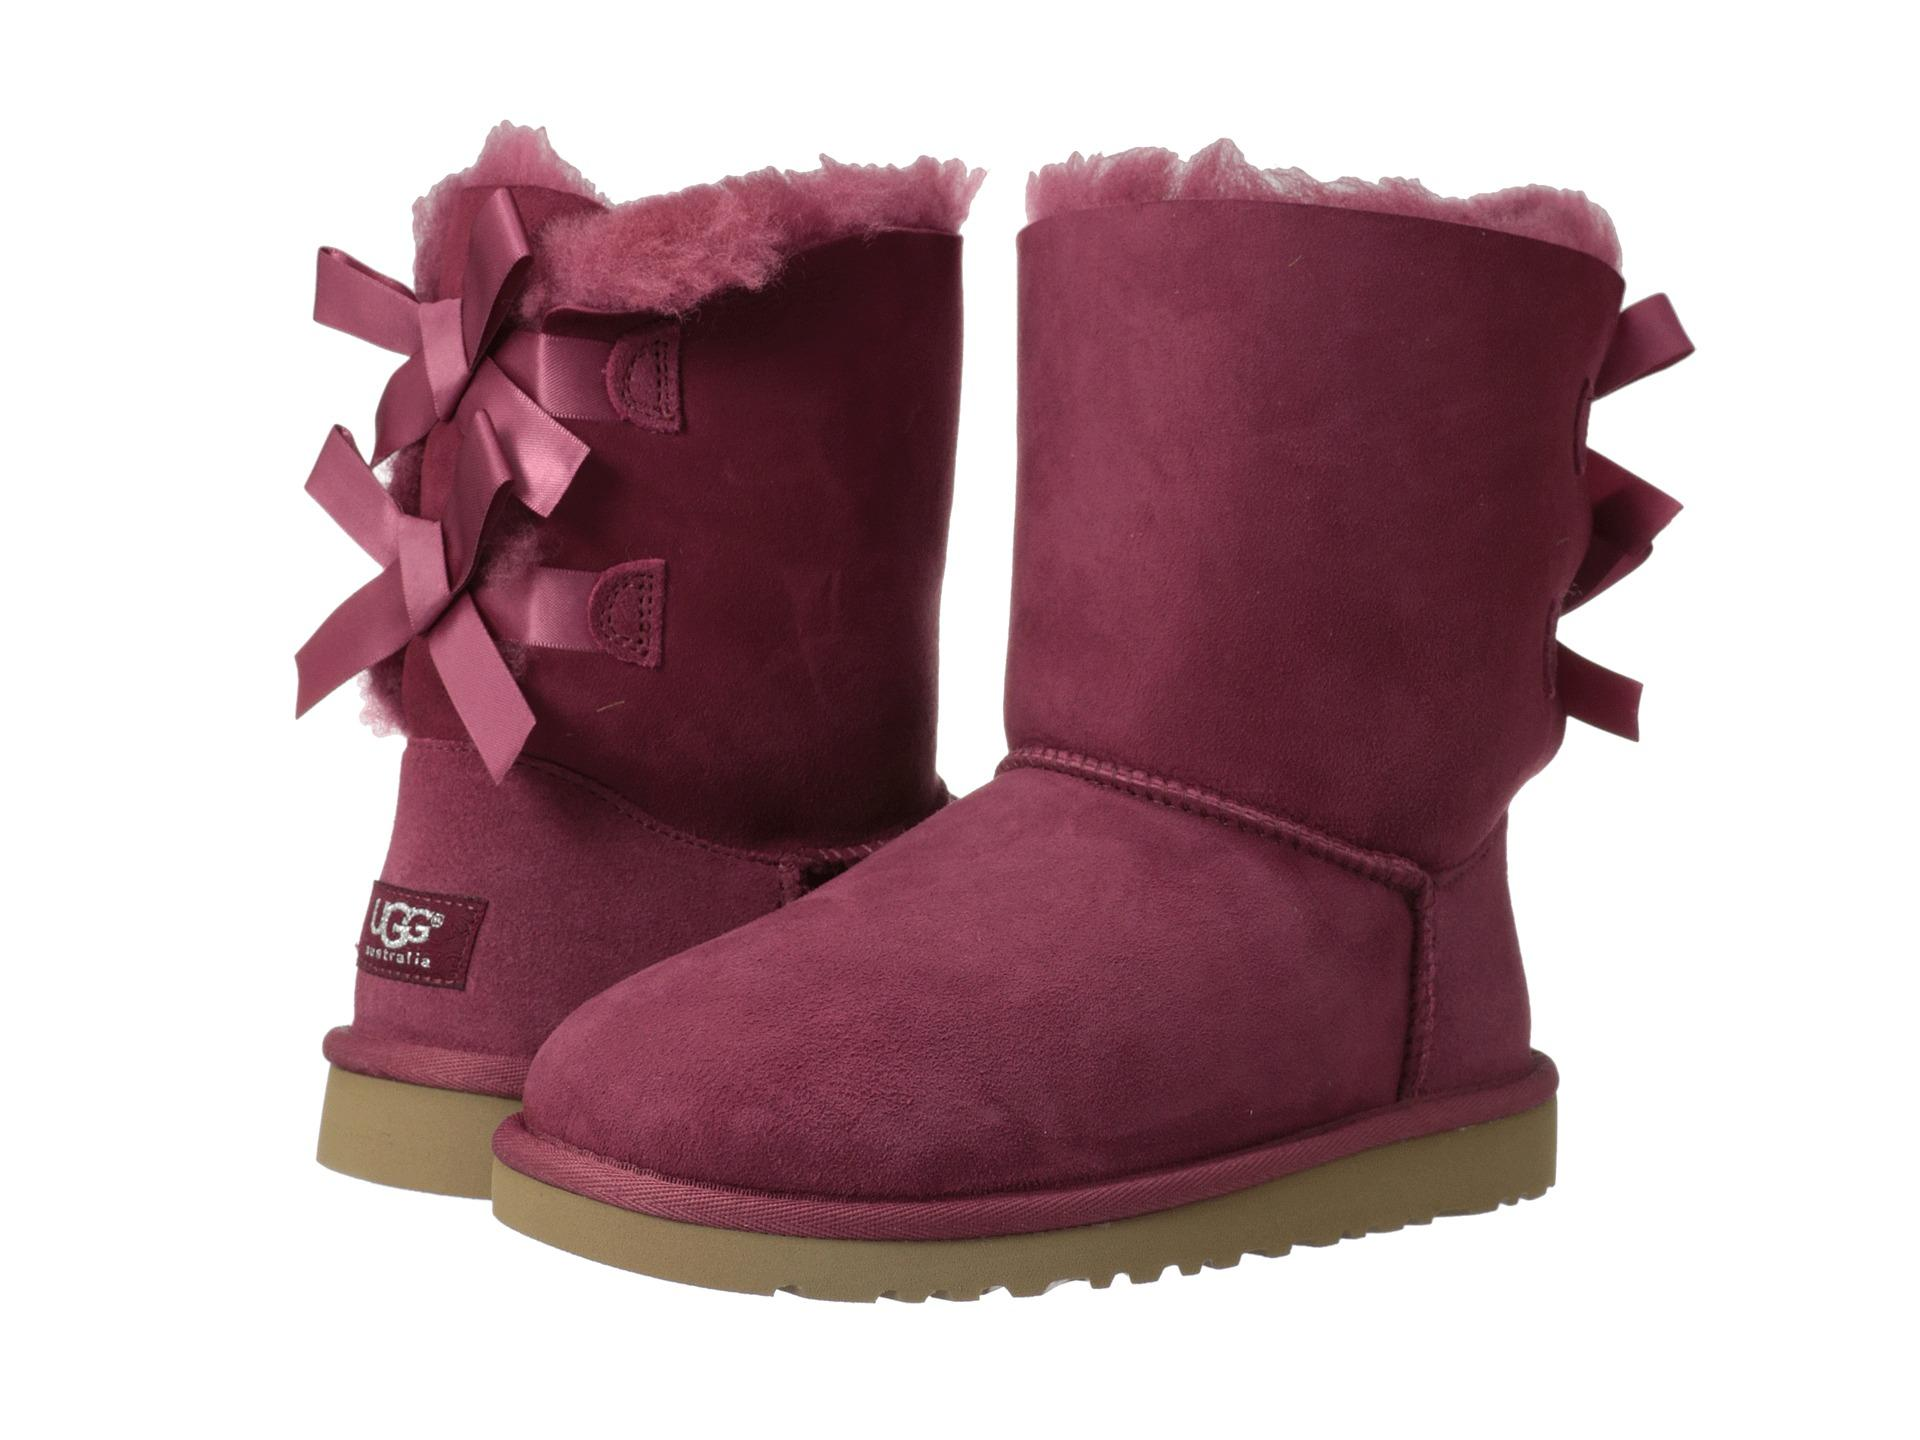 26ef5513958f UGG AUSTRALIA KIDS YOUTH GIRLS BAILEY BOW BOOTS RED PLUM SIZE 5 Y ...